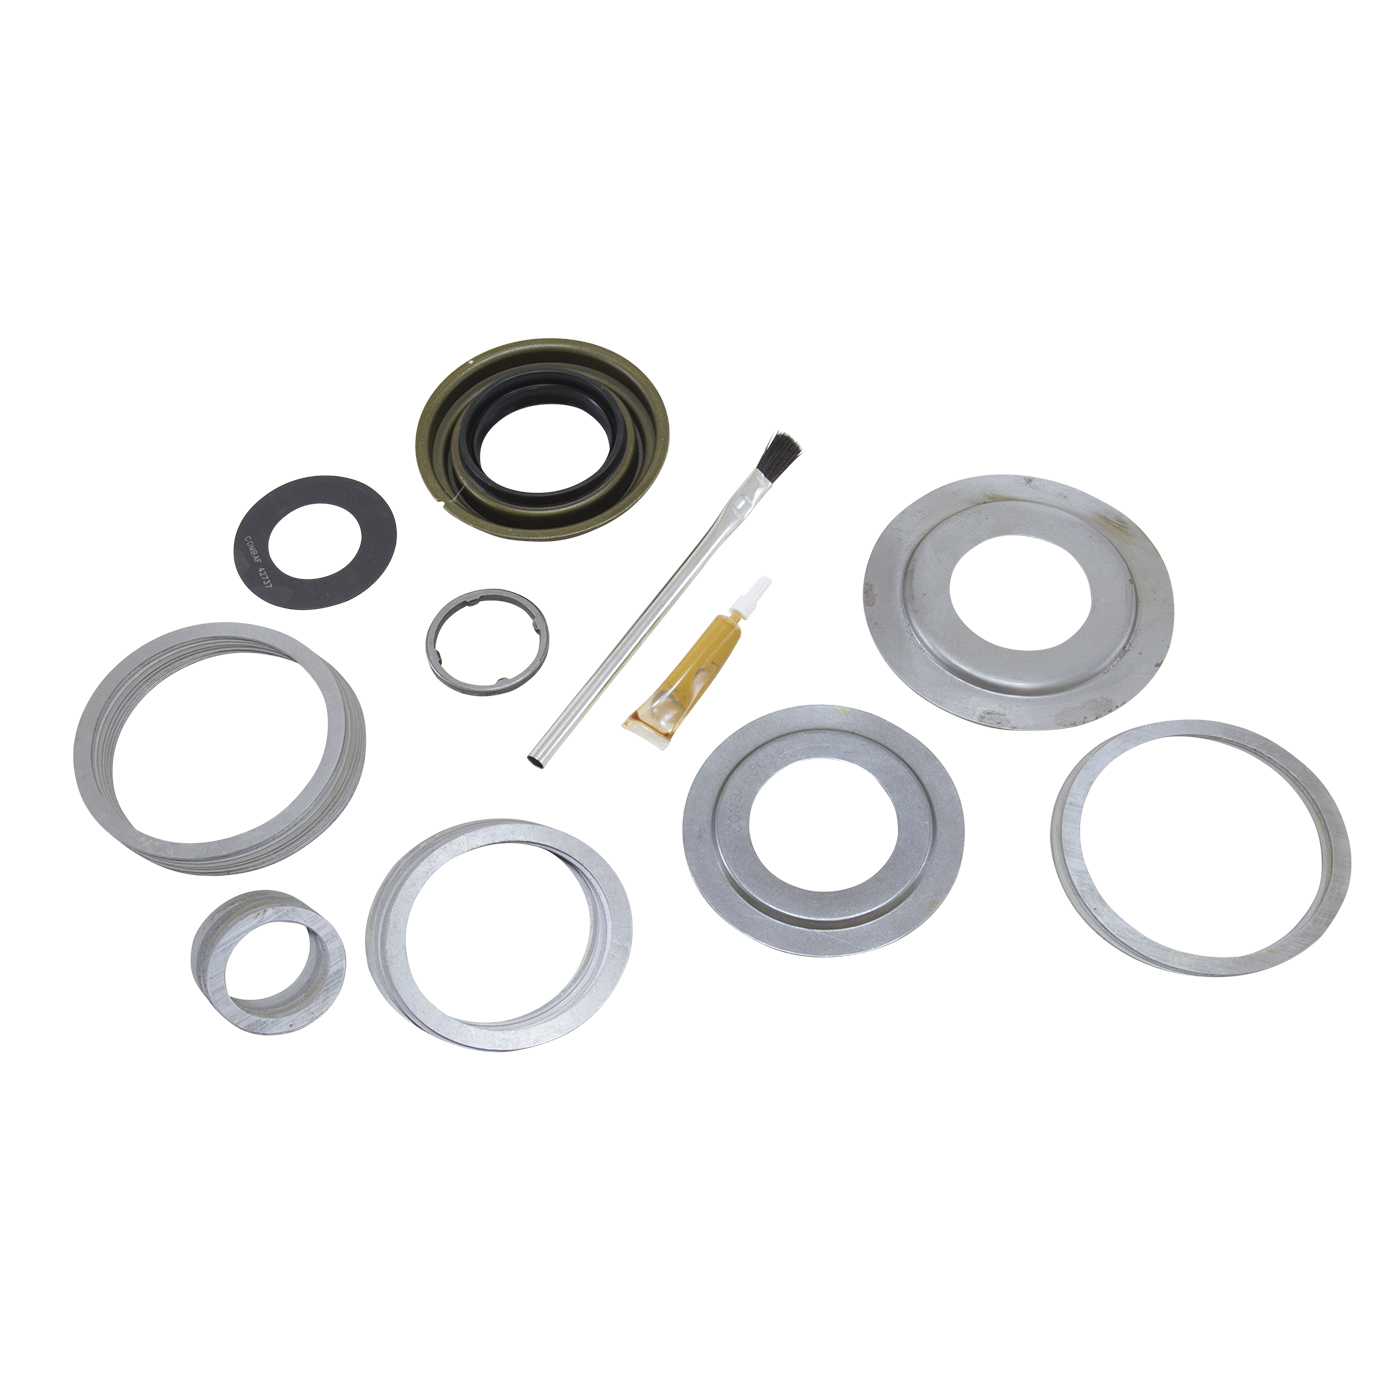 MK D70-U - Yukon Minor install kit for Dana 70-U differential